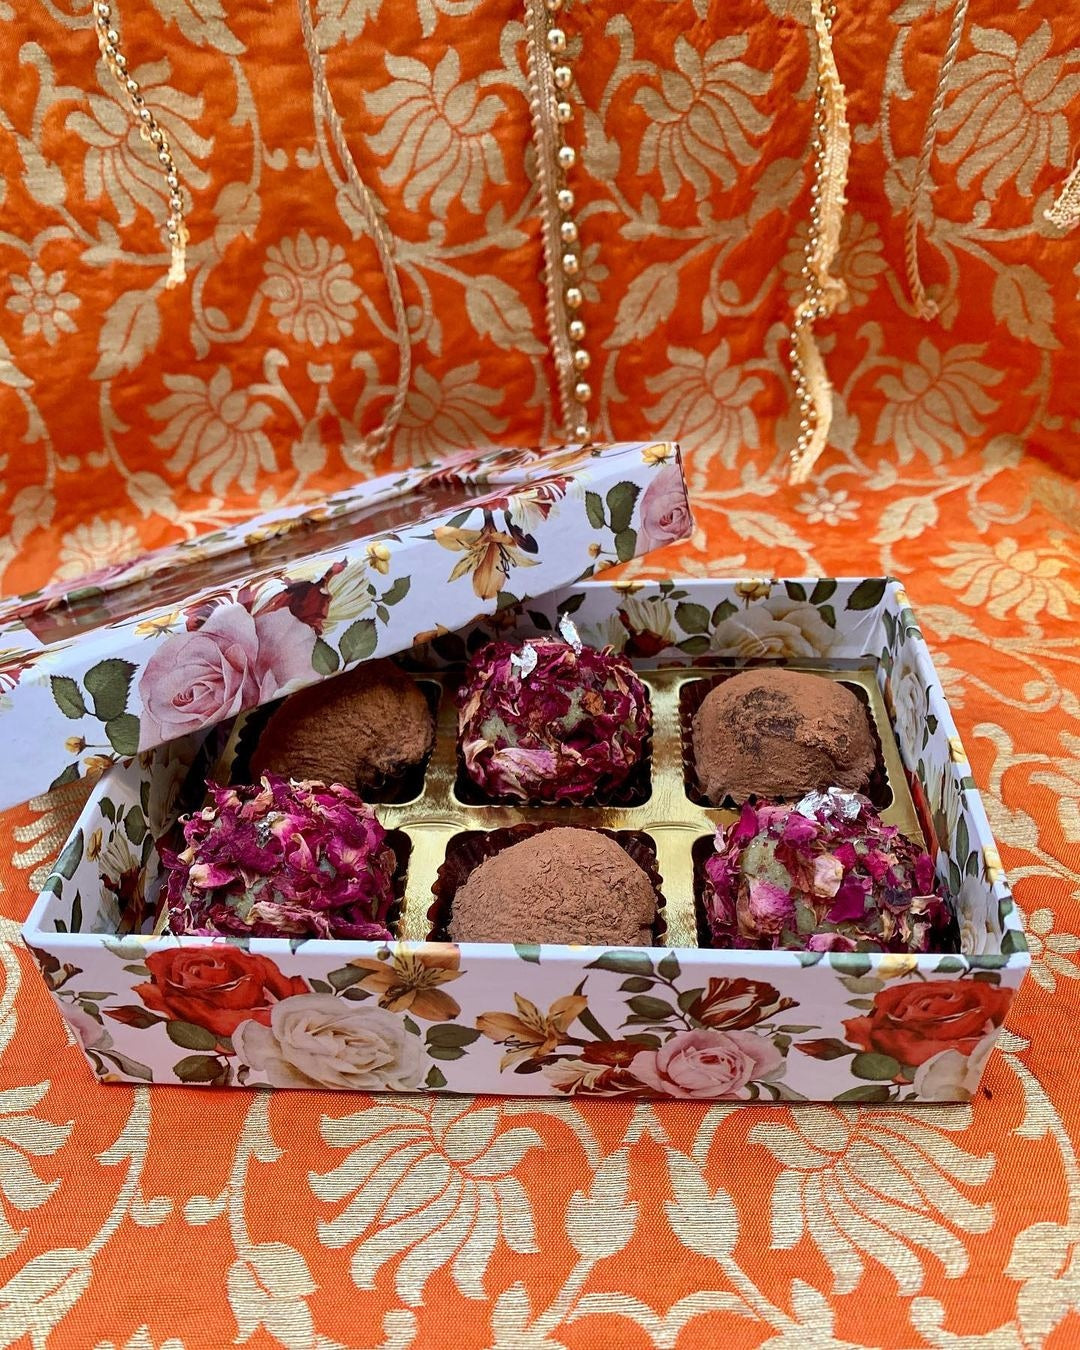 Unbox Wishlist Diwali Hamper with chocolate coconut ladoo and rose pistachio ladoo - 6 pieces🎁